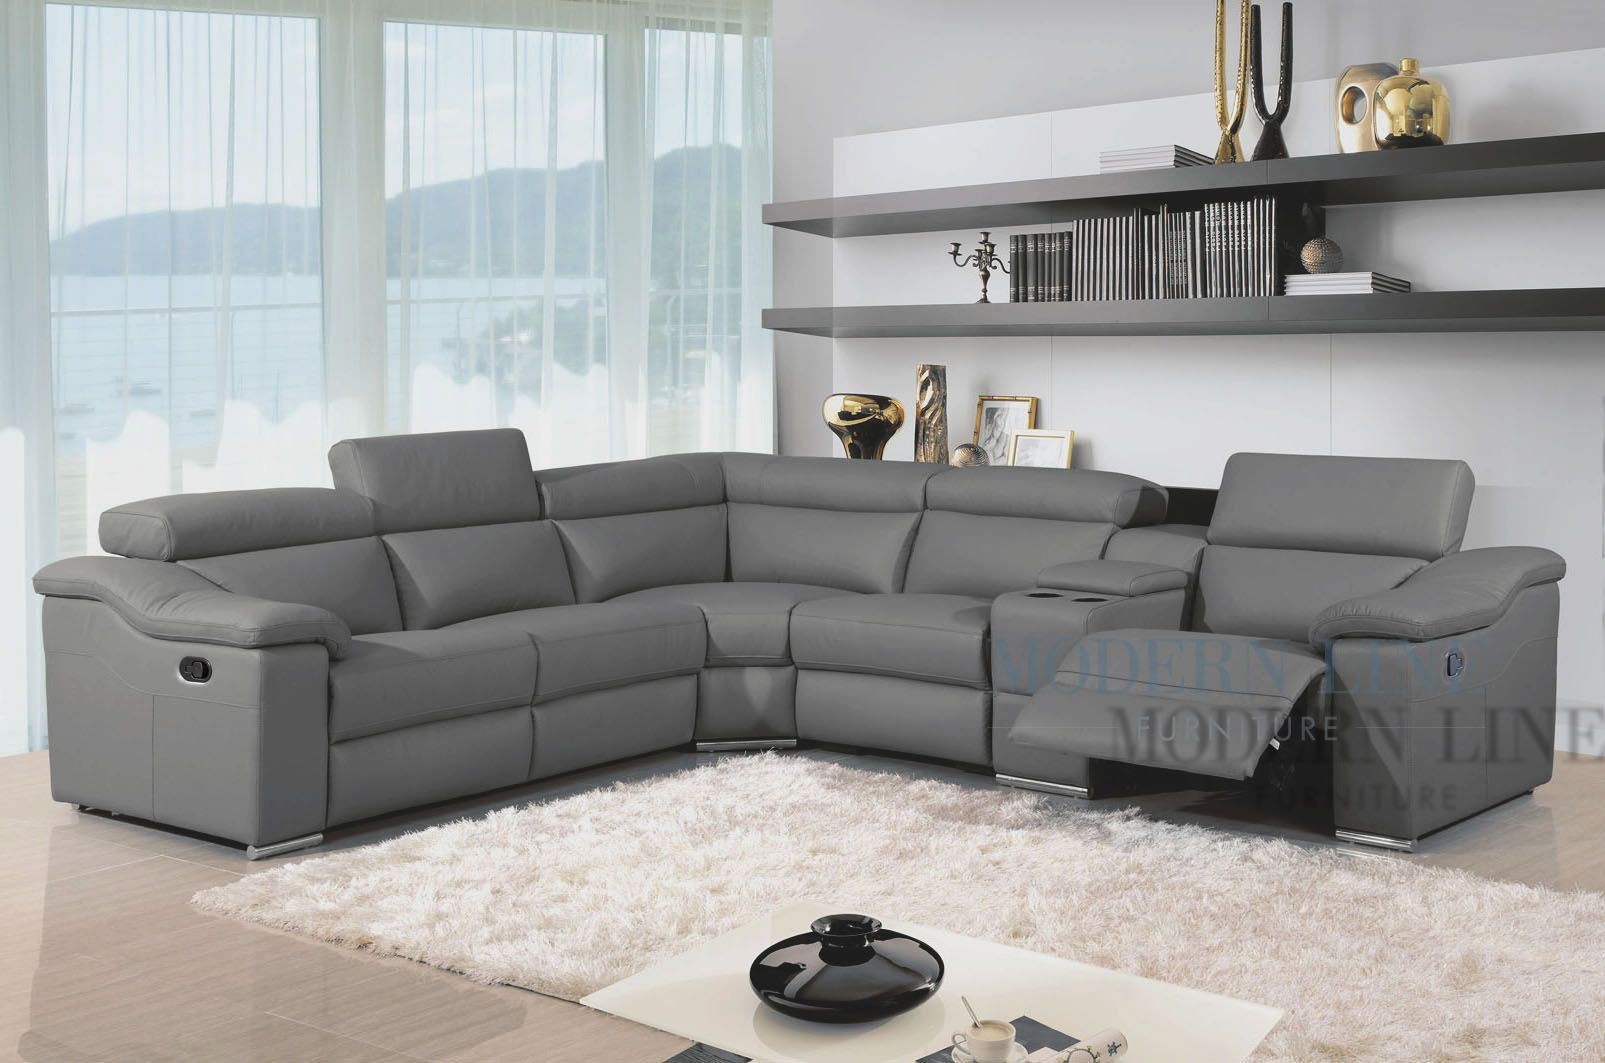 awesome Great Charcoal Grey Sectional Sofa 29 About Remodel Home Design Ideas with Charcoal Grey Sectional : designer reclining sofa - islam-shia.org